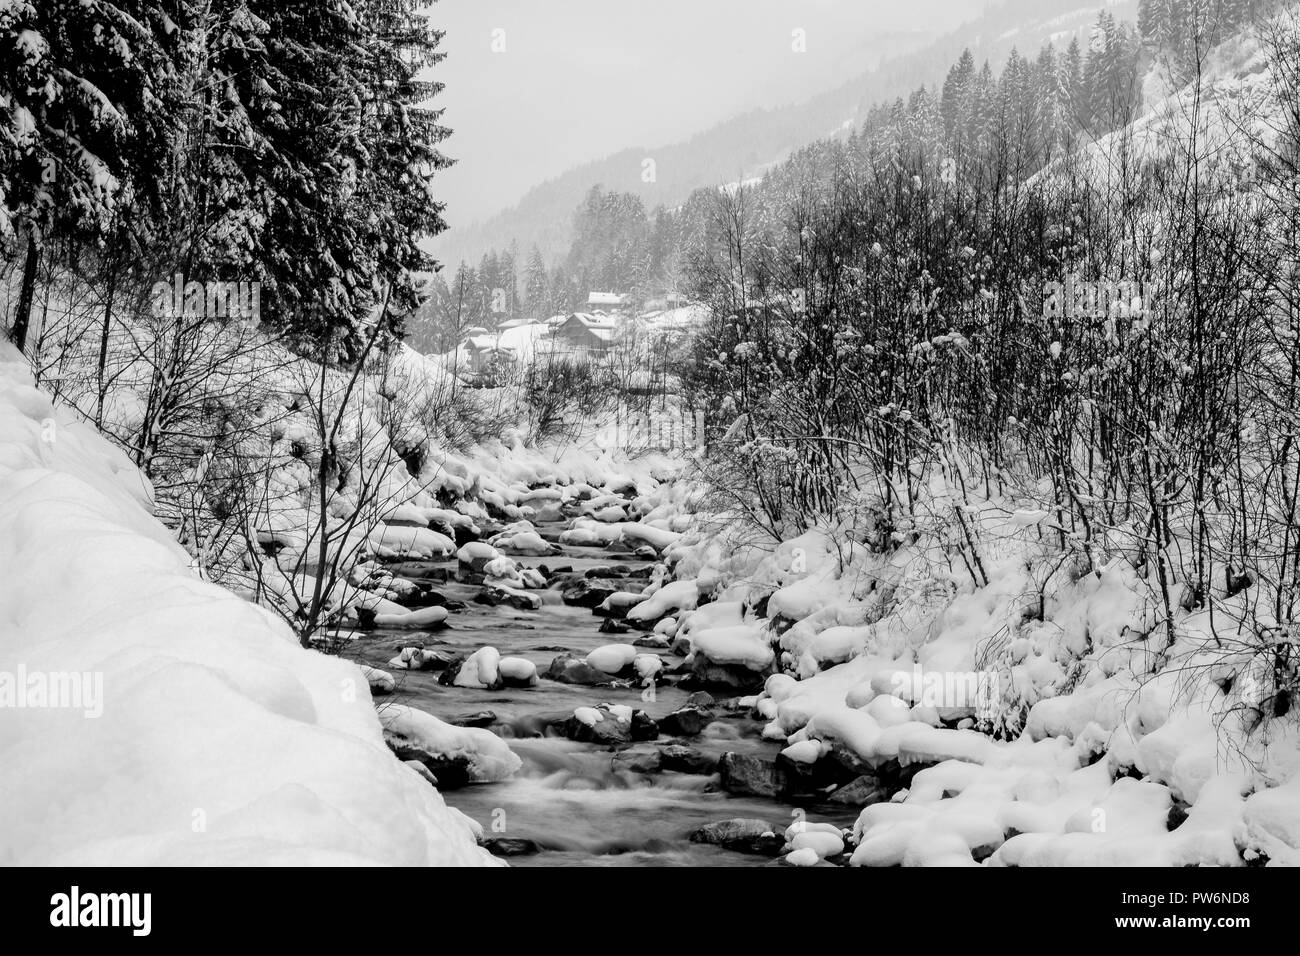 Ein Fluss im Winter.Alpen. Stock Photo